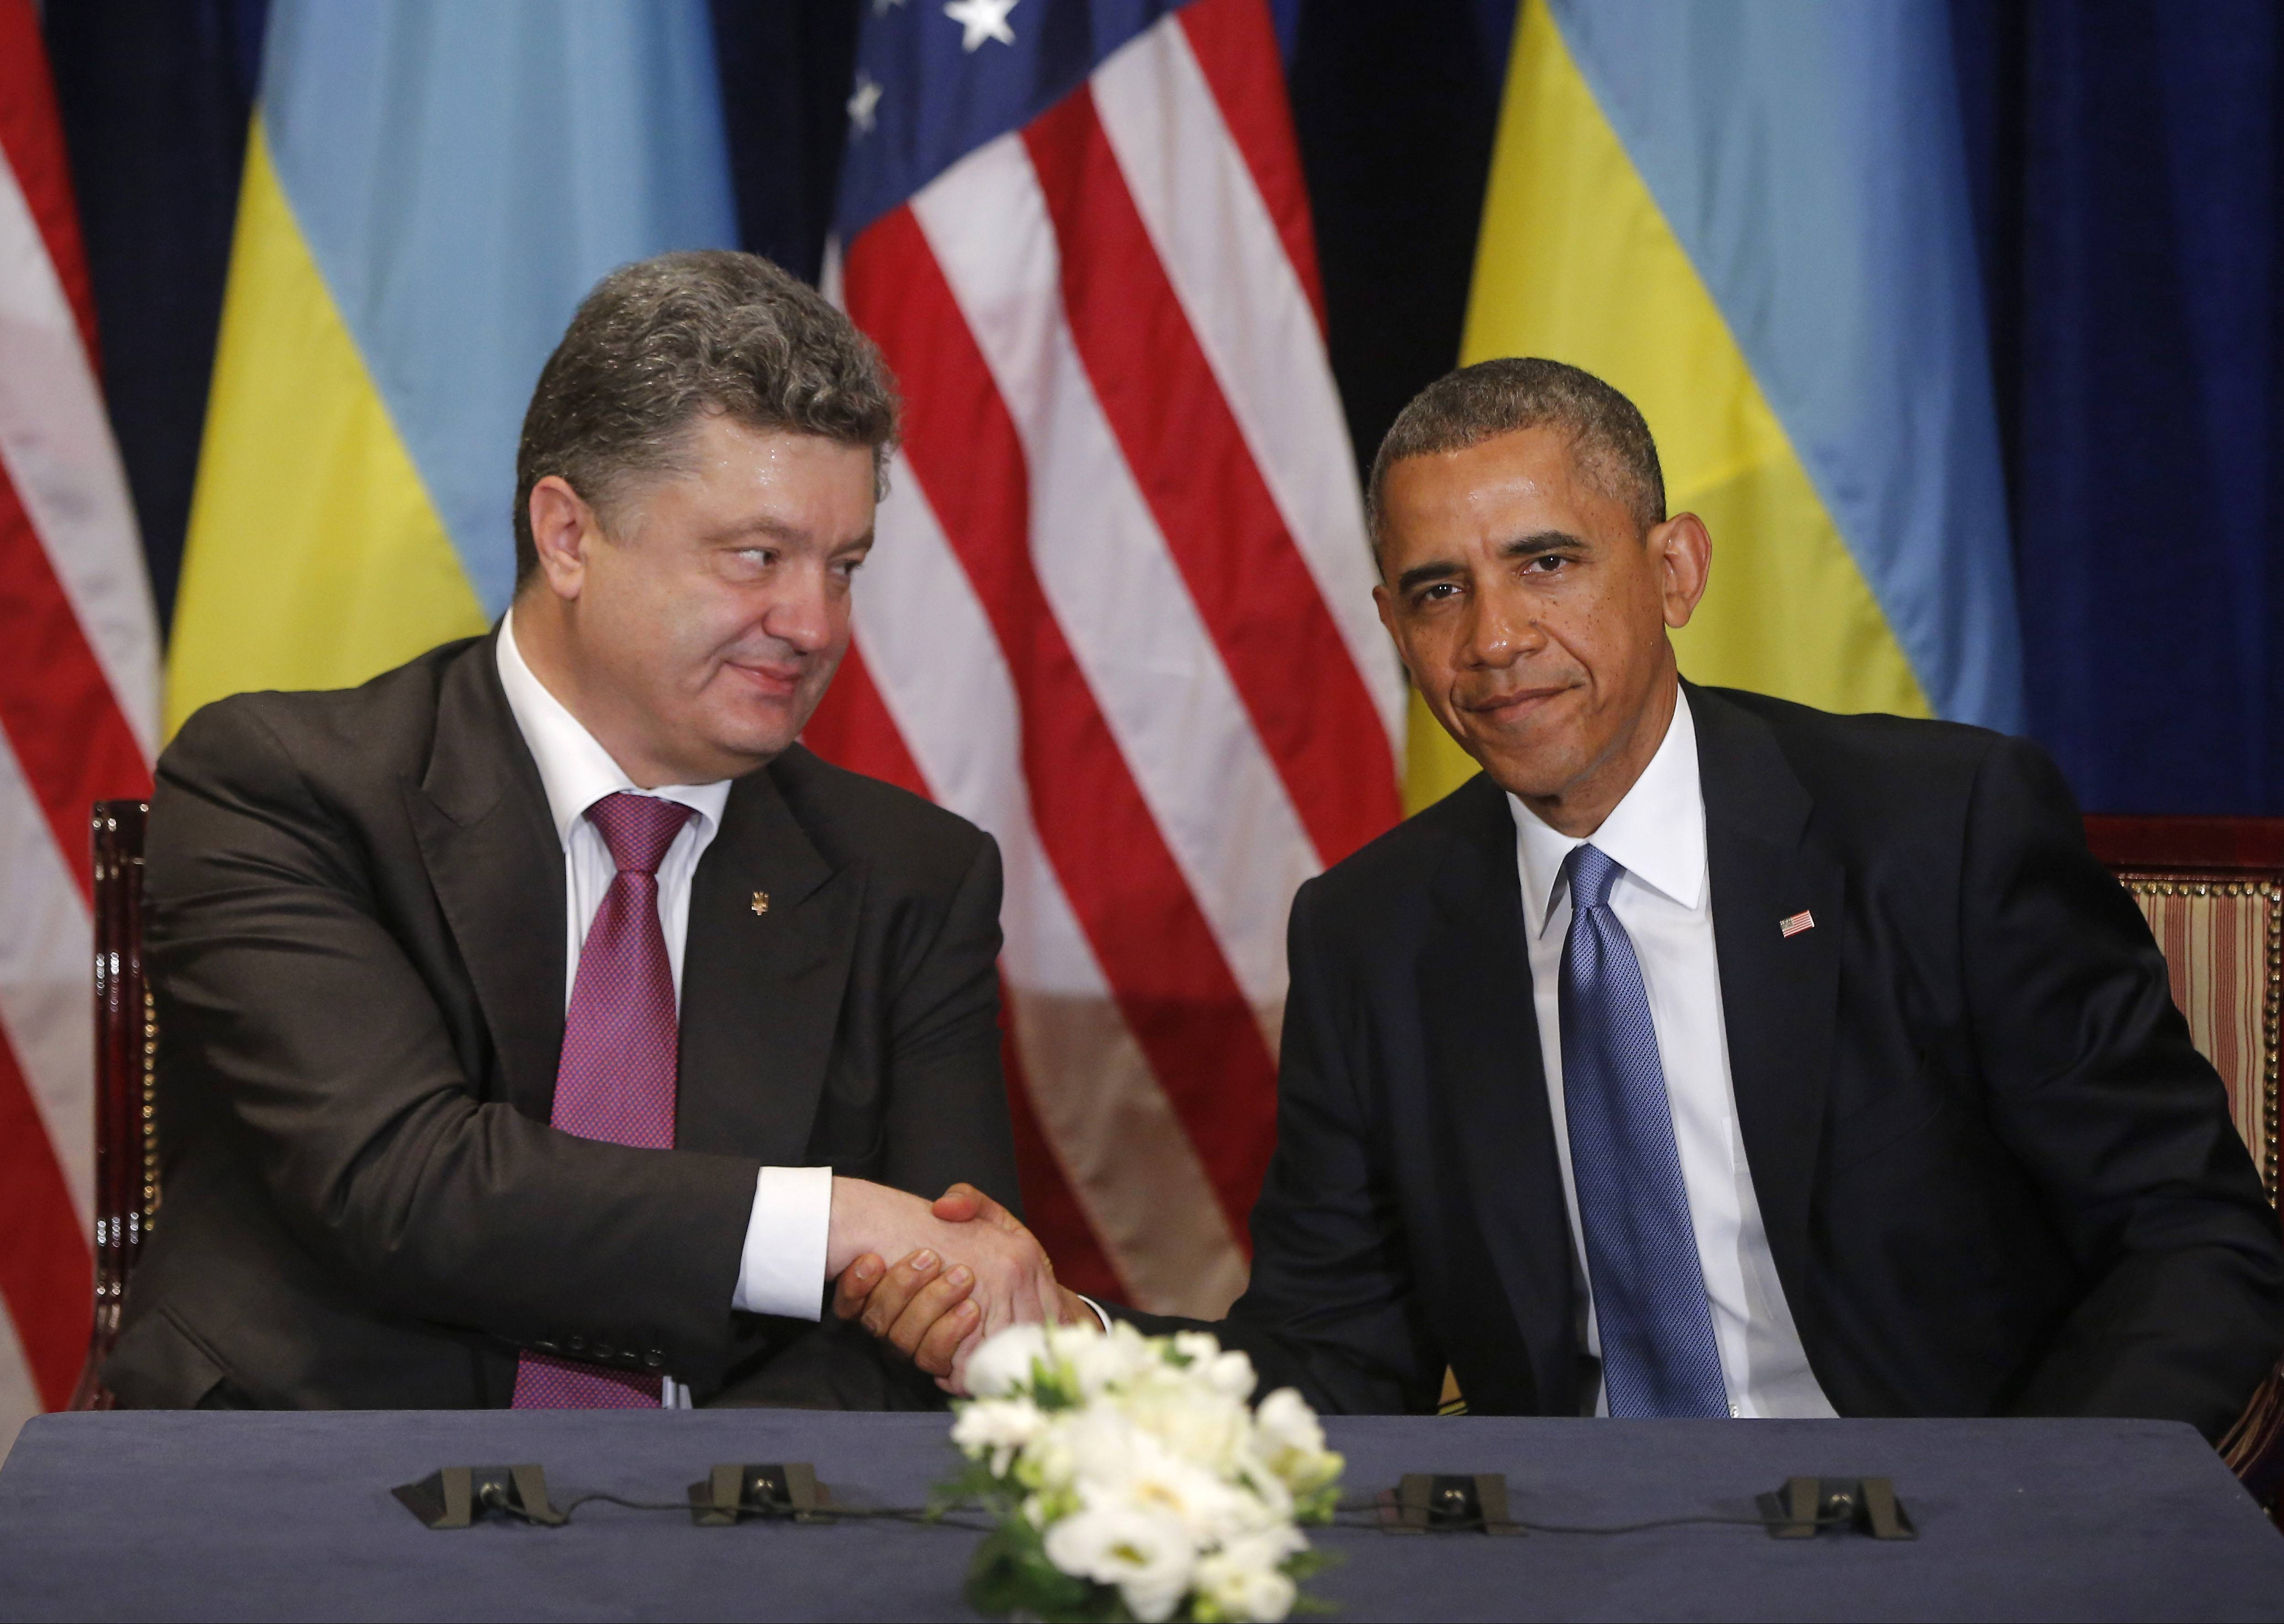 President Barack Obama, right, shakes hands with Ukraine president-elect Petro Poroshenko in Warsaw, Poland, Wednesday, June 4, 2014.